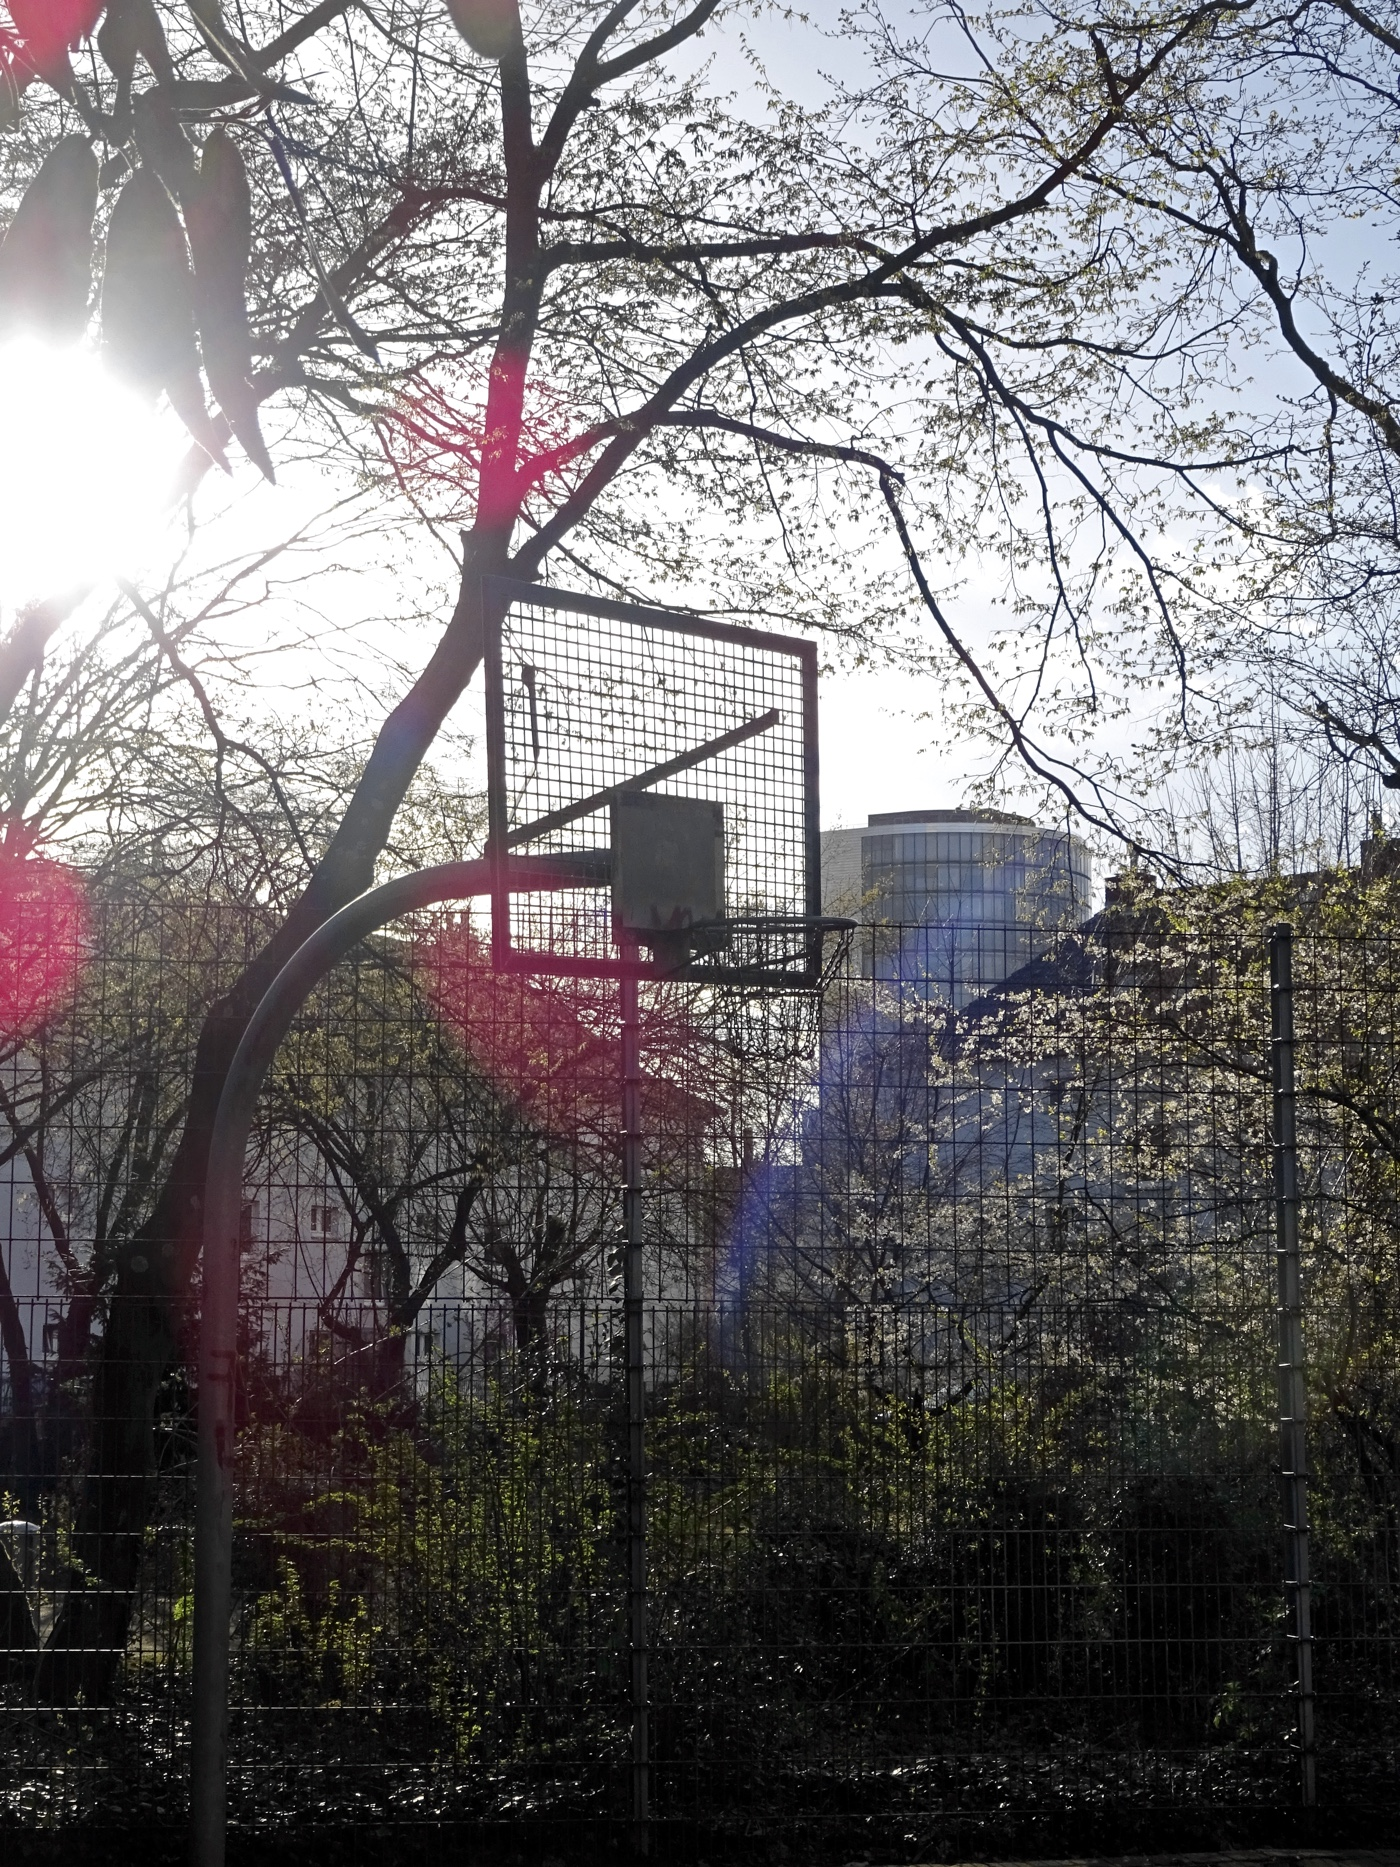 Streetball in Unterbilk.